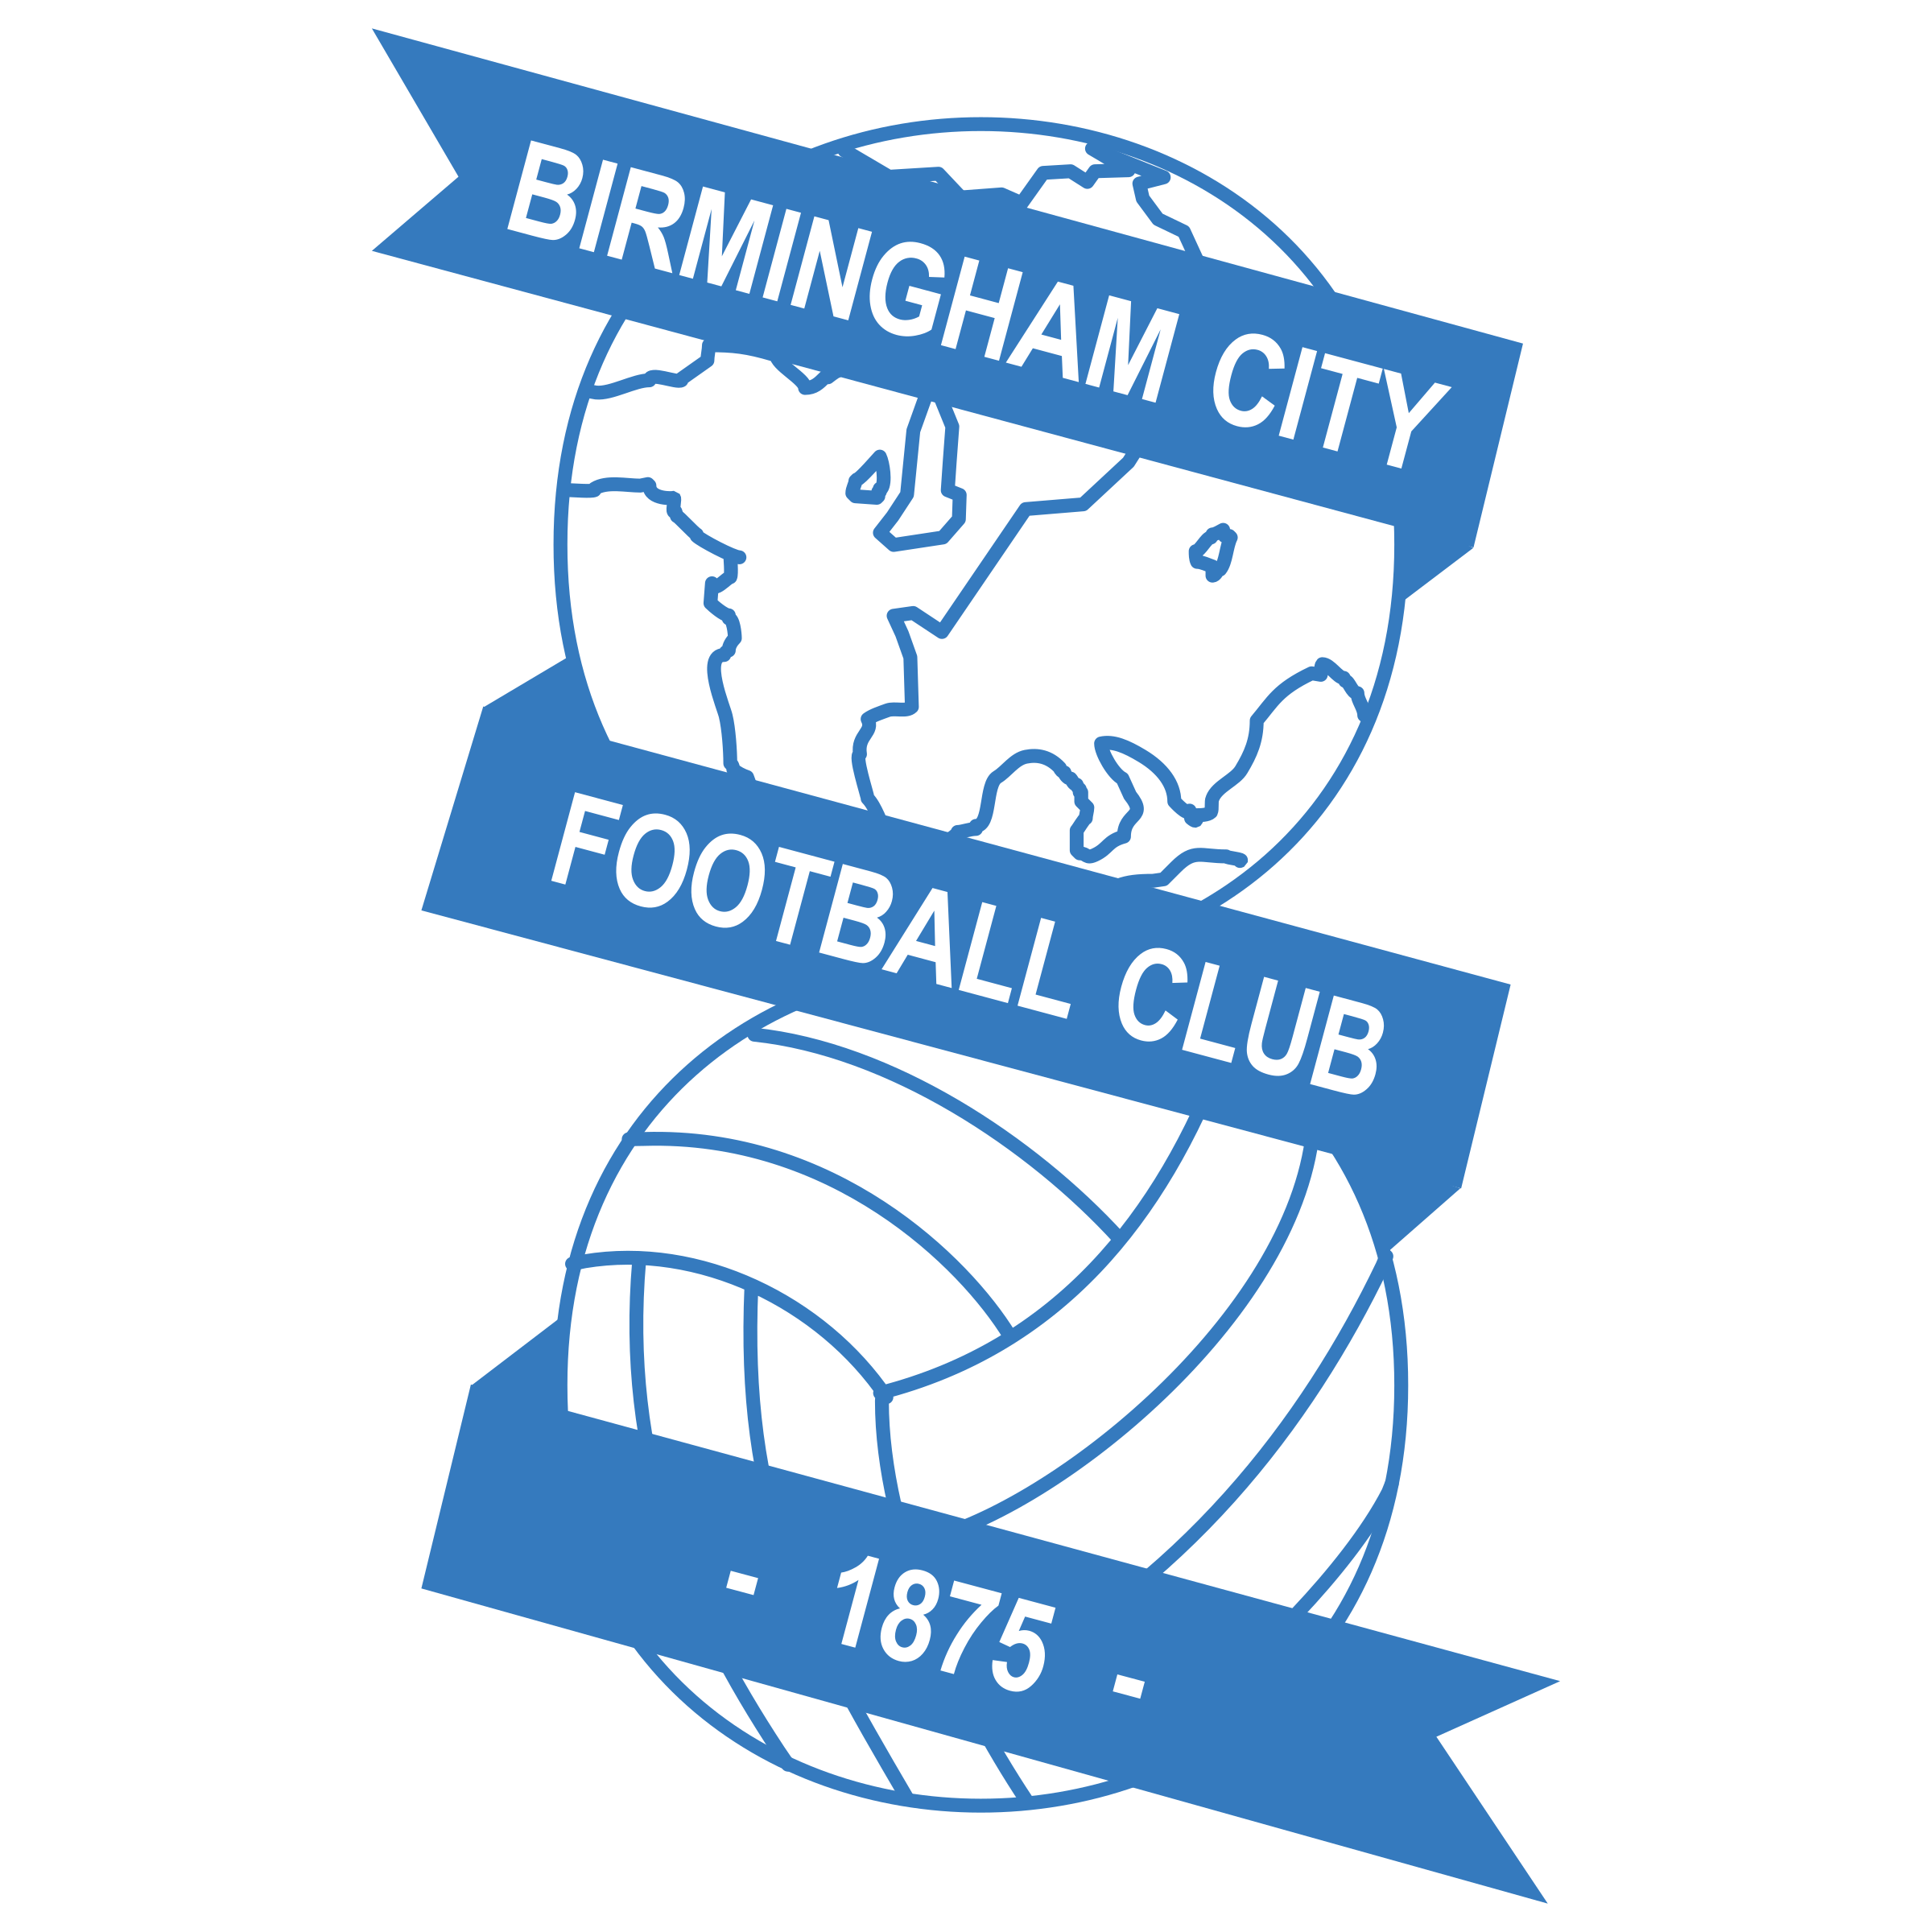 Birmingham Png - Birmingham City FC Logo PNG Transparent & SVG Vector - Freebie Supply